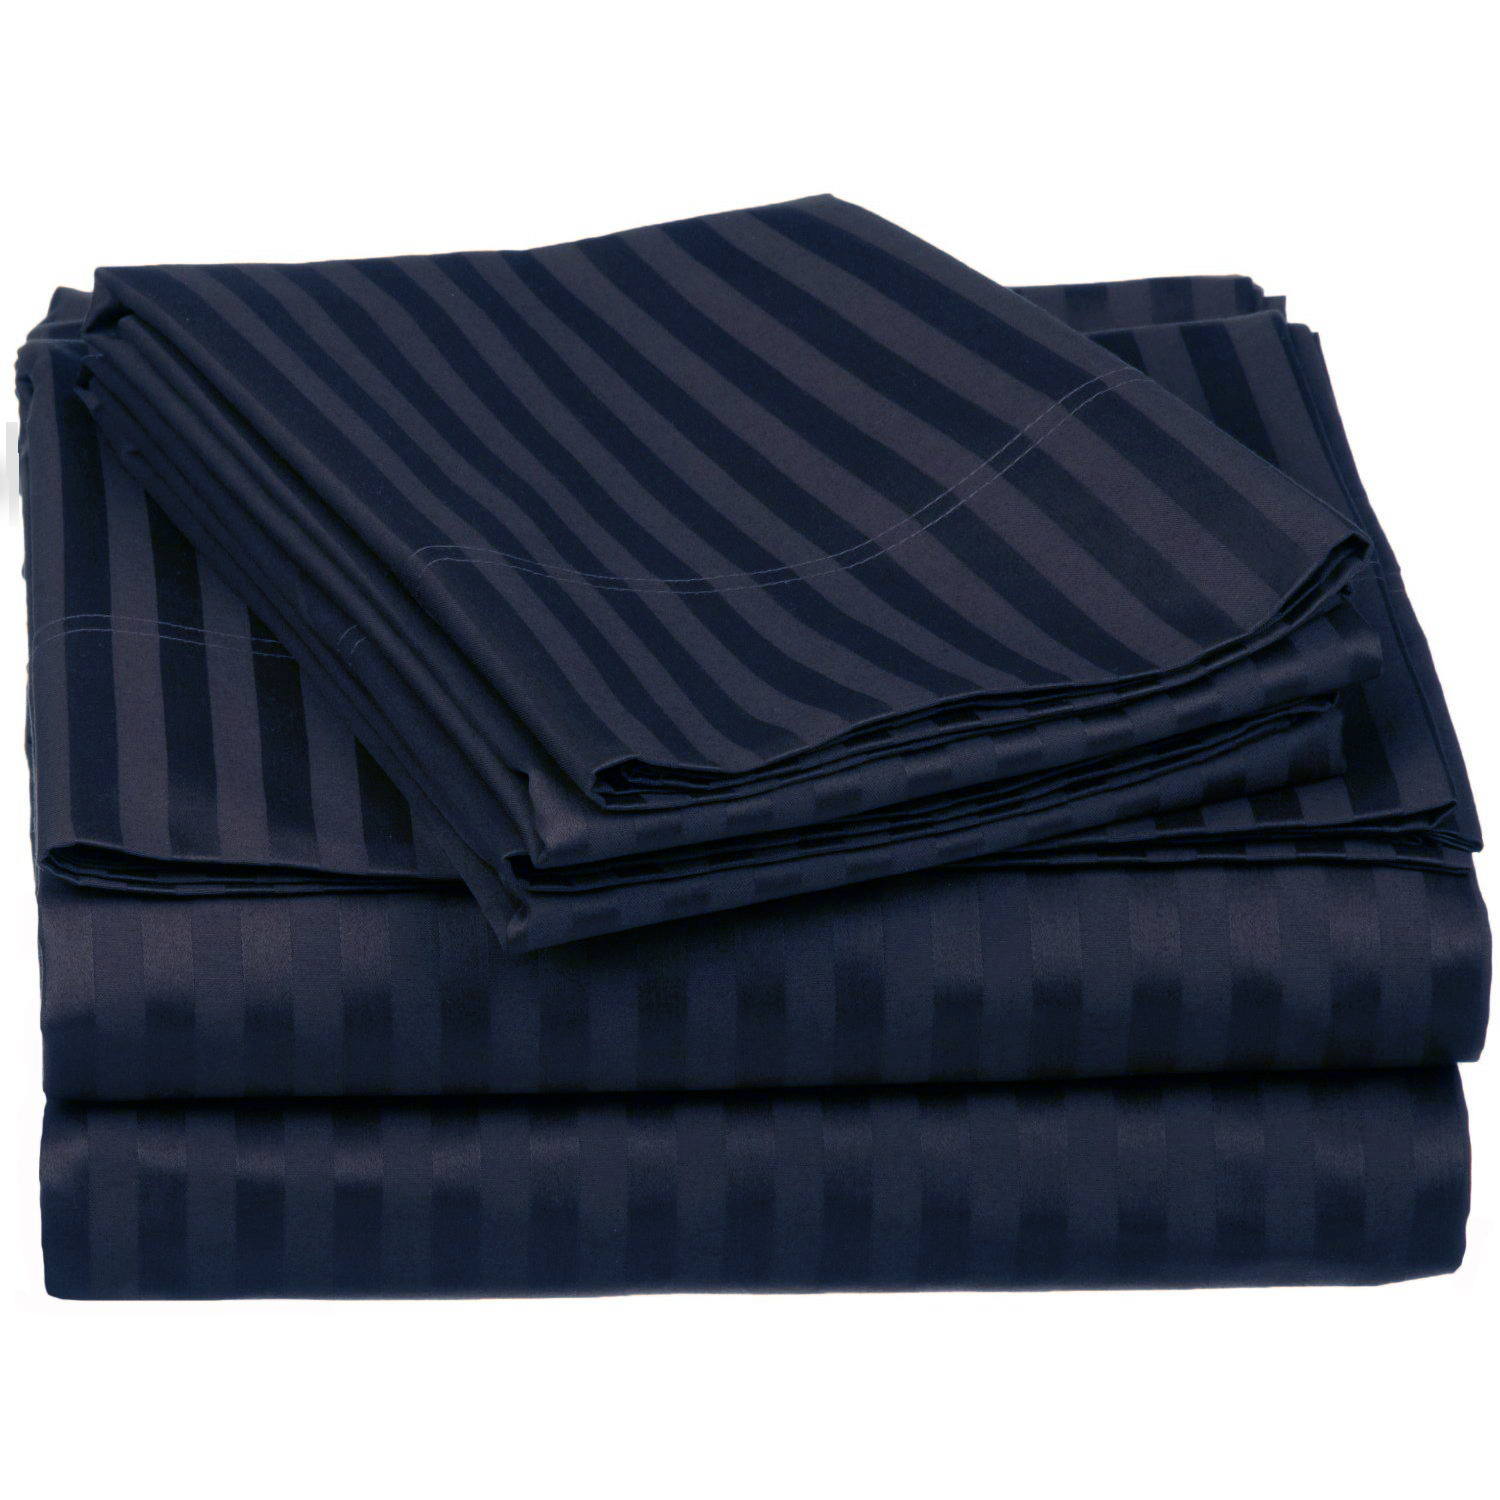 Superior 650 Thread Count 100% Premium Quality Cotton Stripe Sheet Set